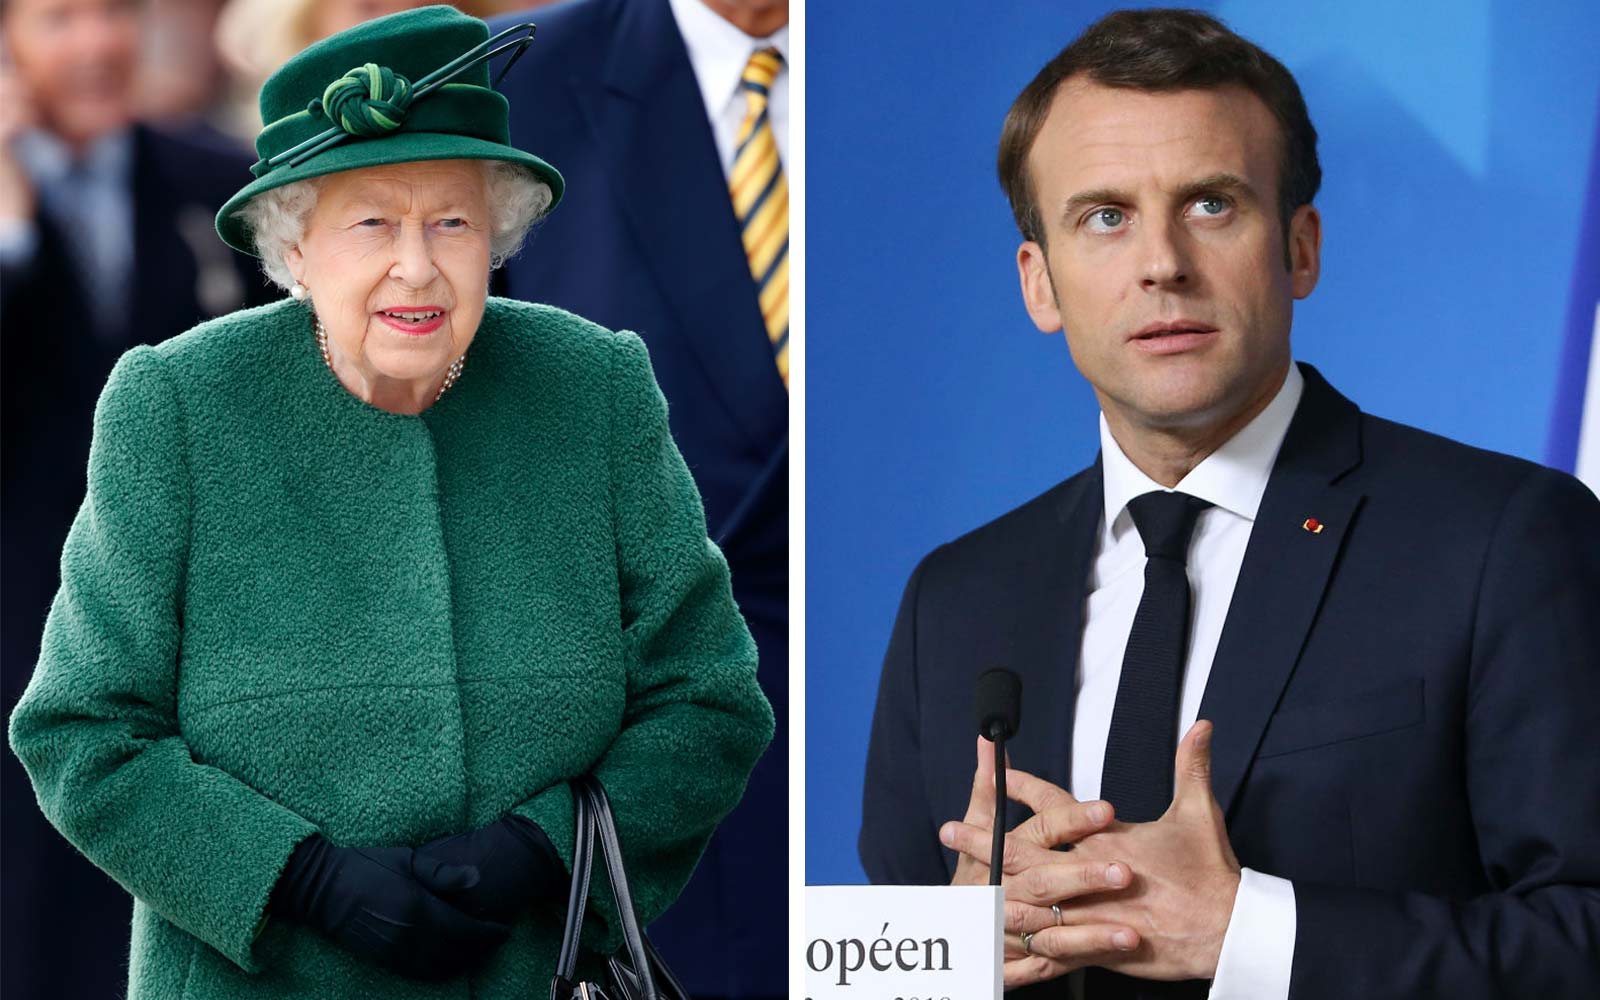 Queen Elizabeth Sends Heartfelt Note to French President After Notre Dame Fire